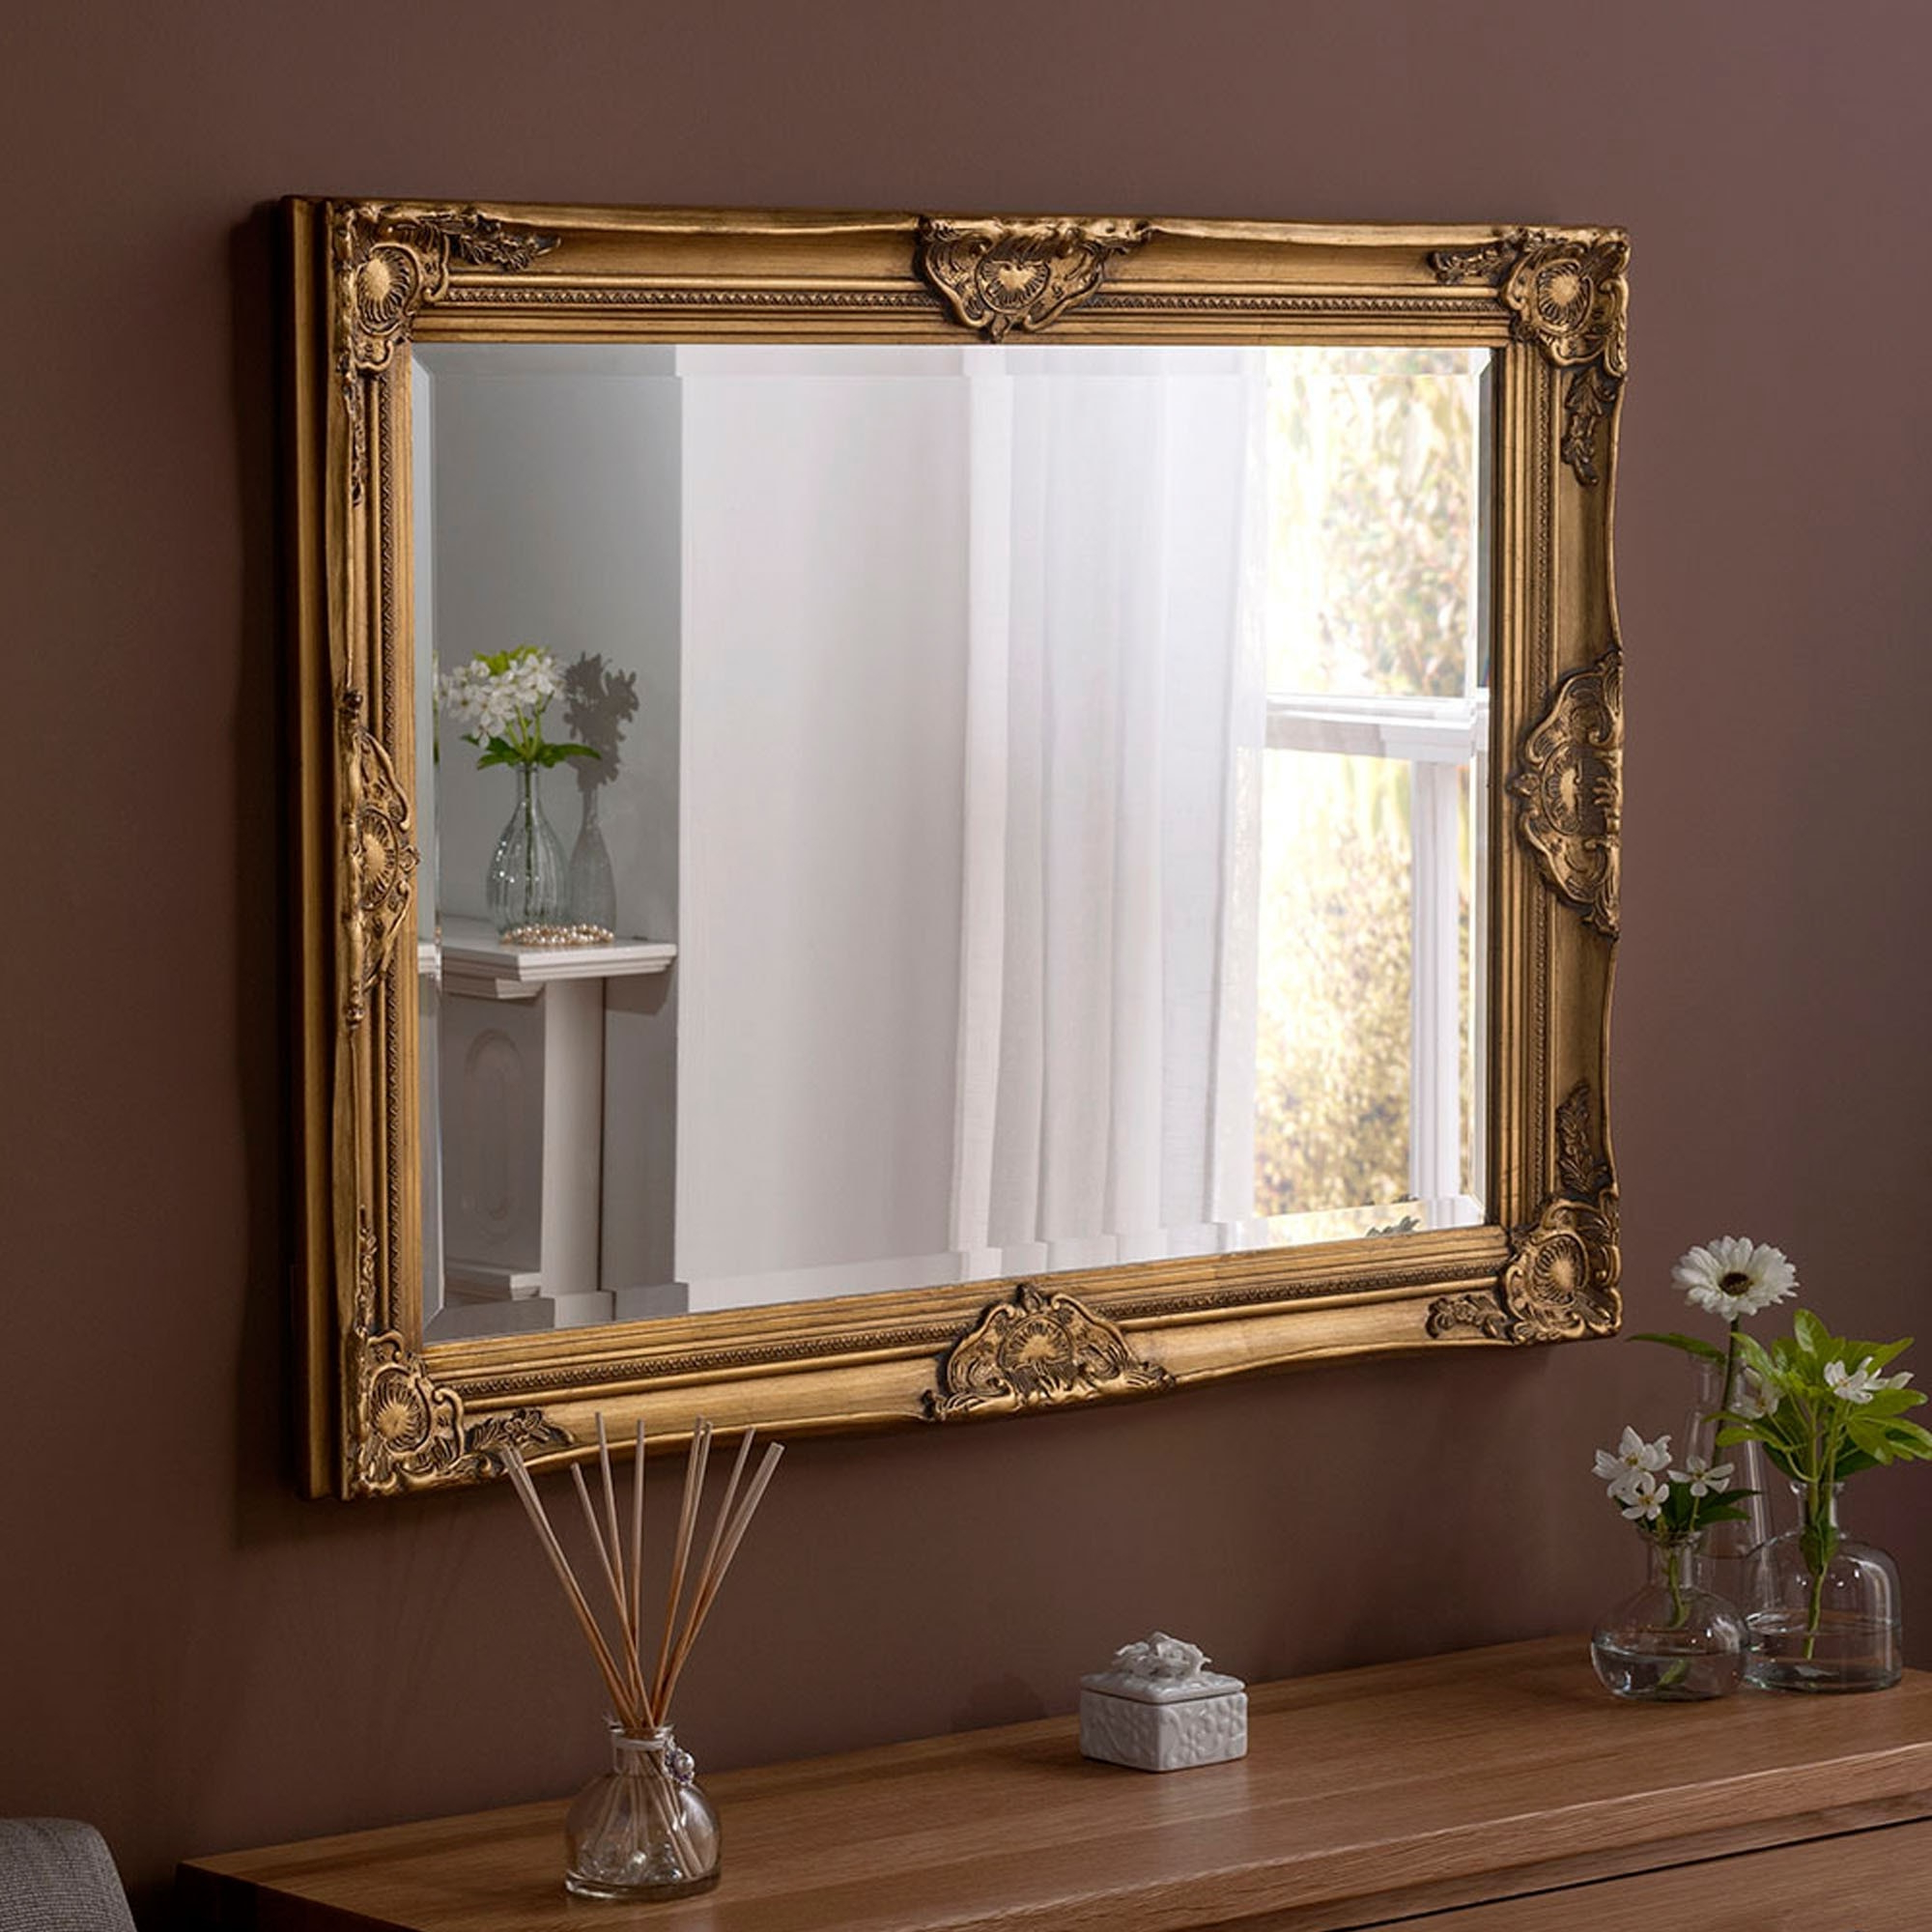 Well Liked Decorative Baroque Gold Wall Mirror In Baroque Wall Mirrors (View 20 of 20)